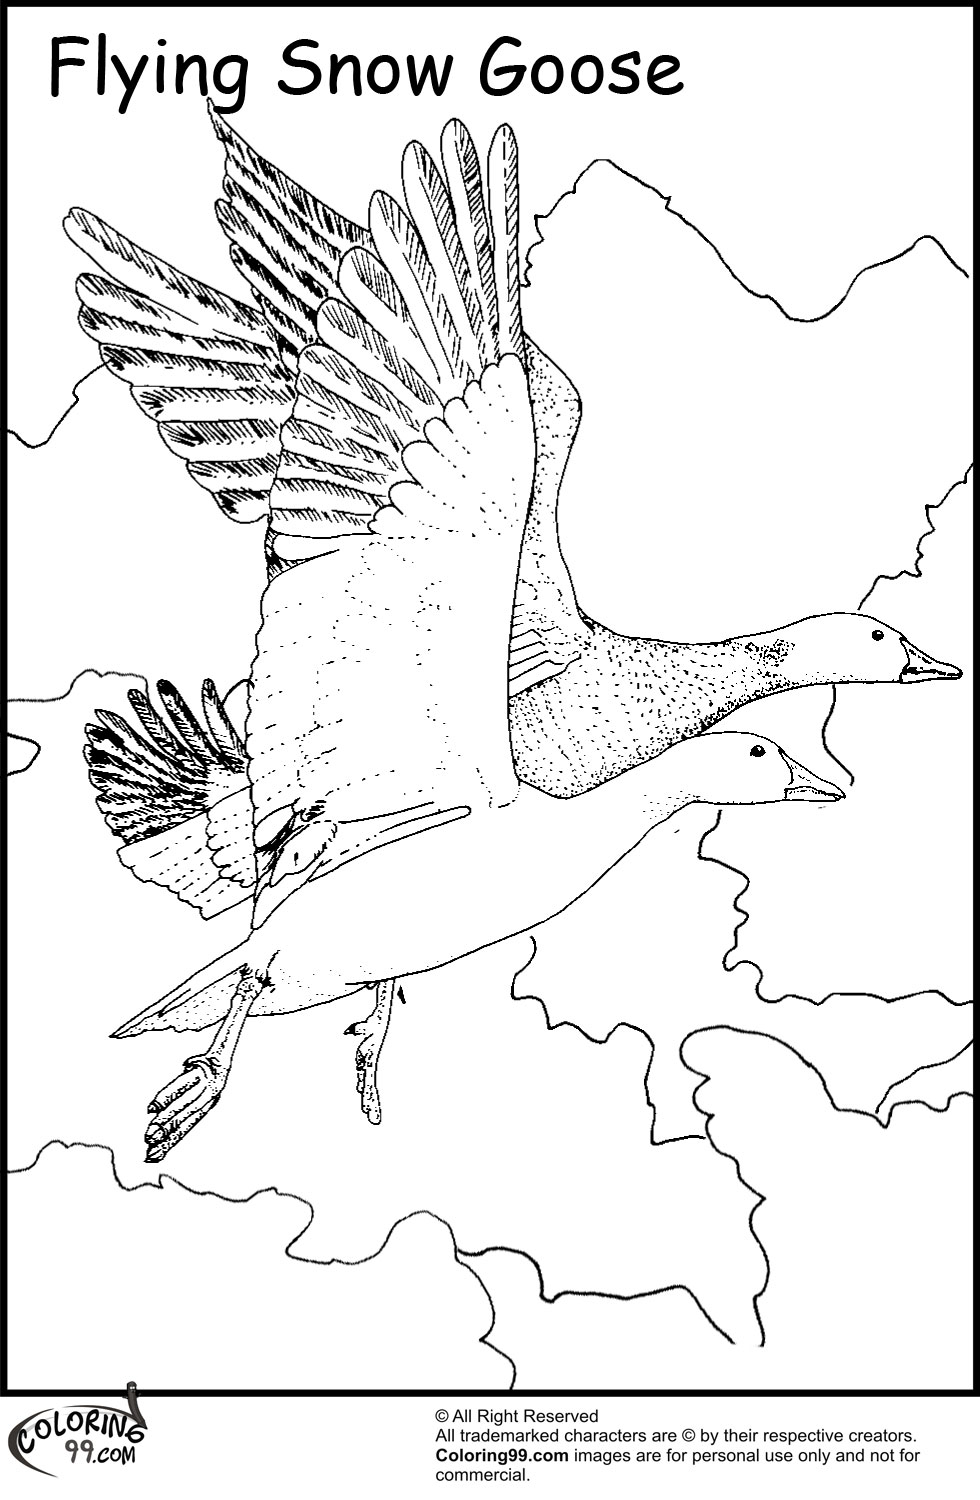 migrating birds coloring pages - photo#14